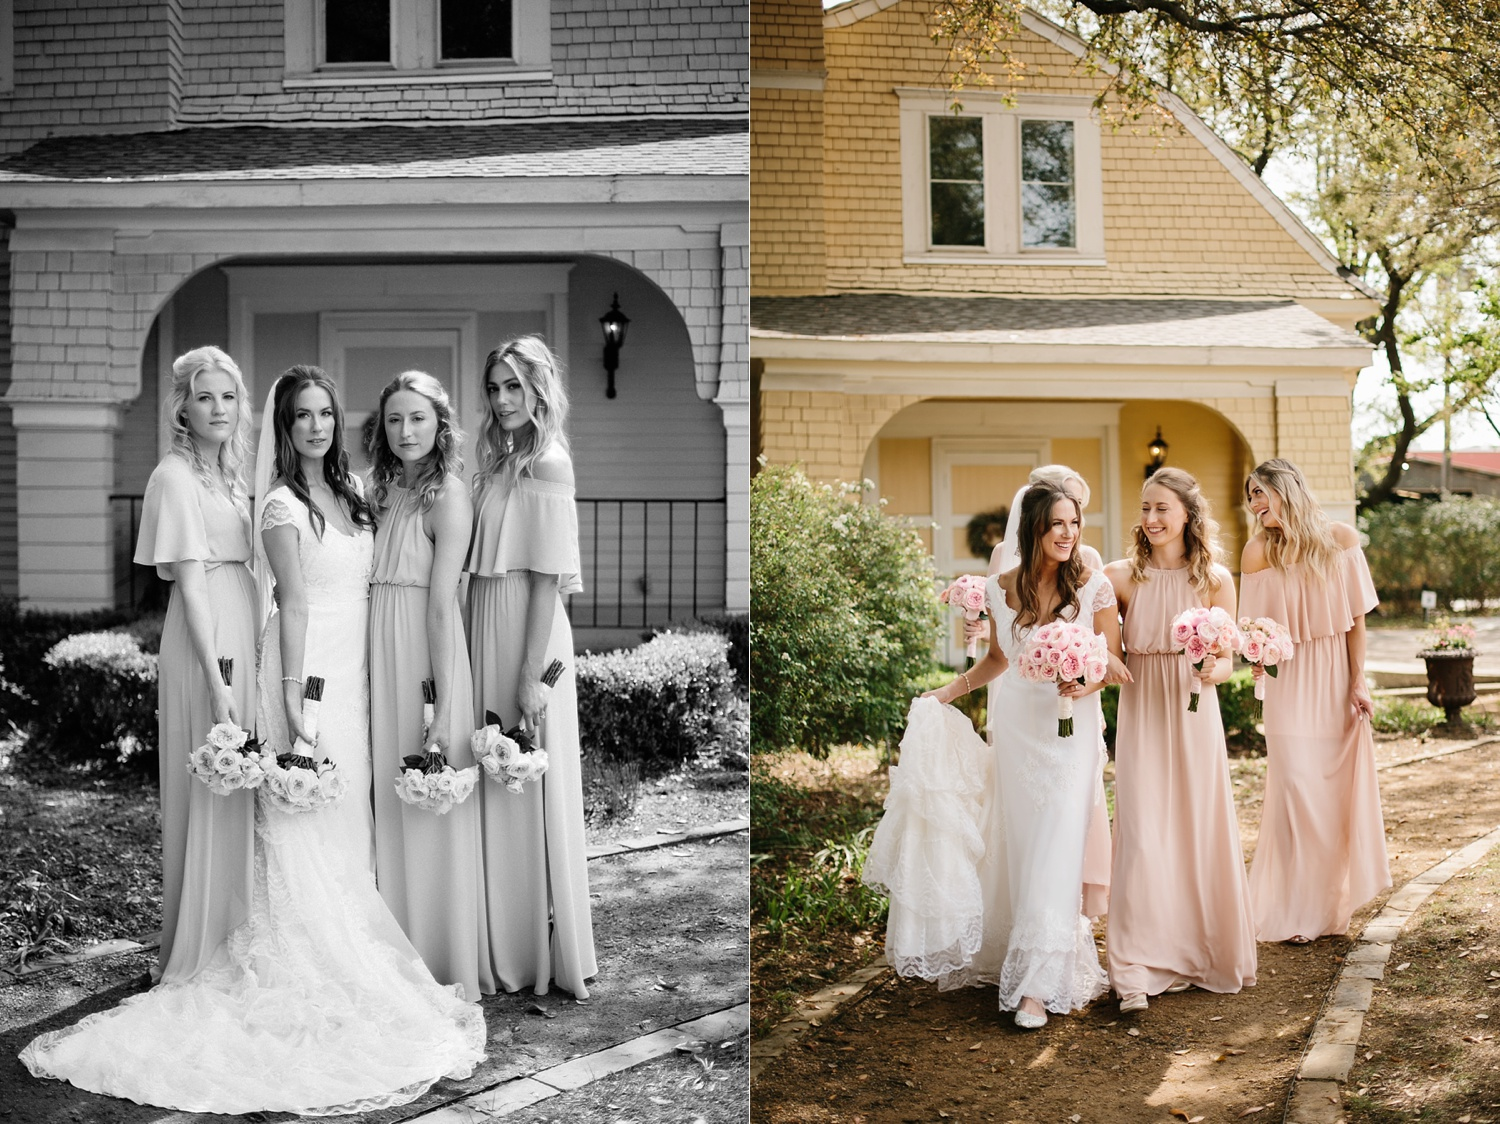 Amber + Daniel an intimate, simple, spring ceremony at Heard Craig Center and reception at Gather in McKinney, Texas by North Texas Wedding Photographer Rachel Meagan Photography 033